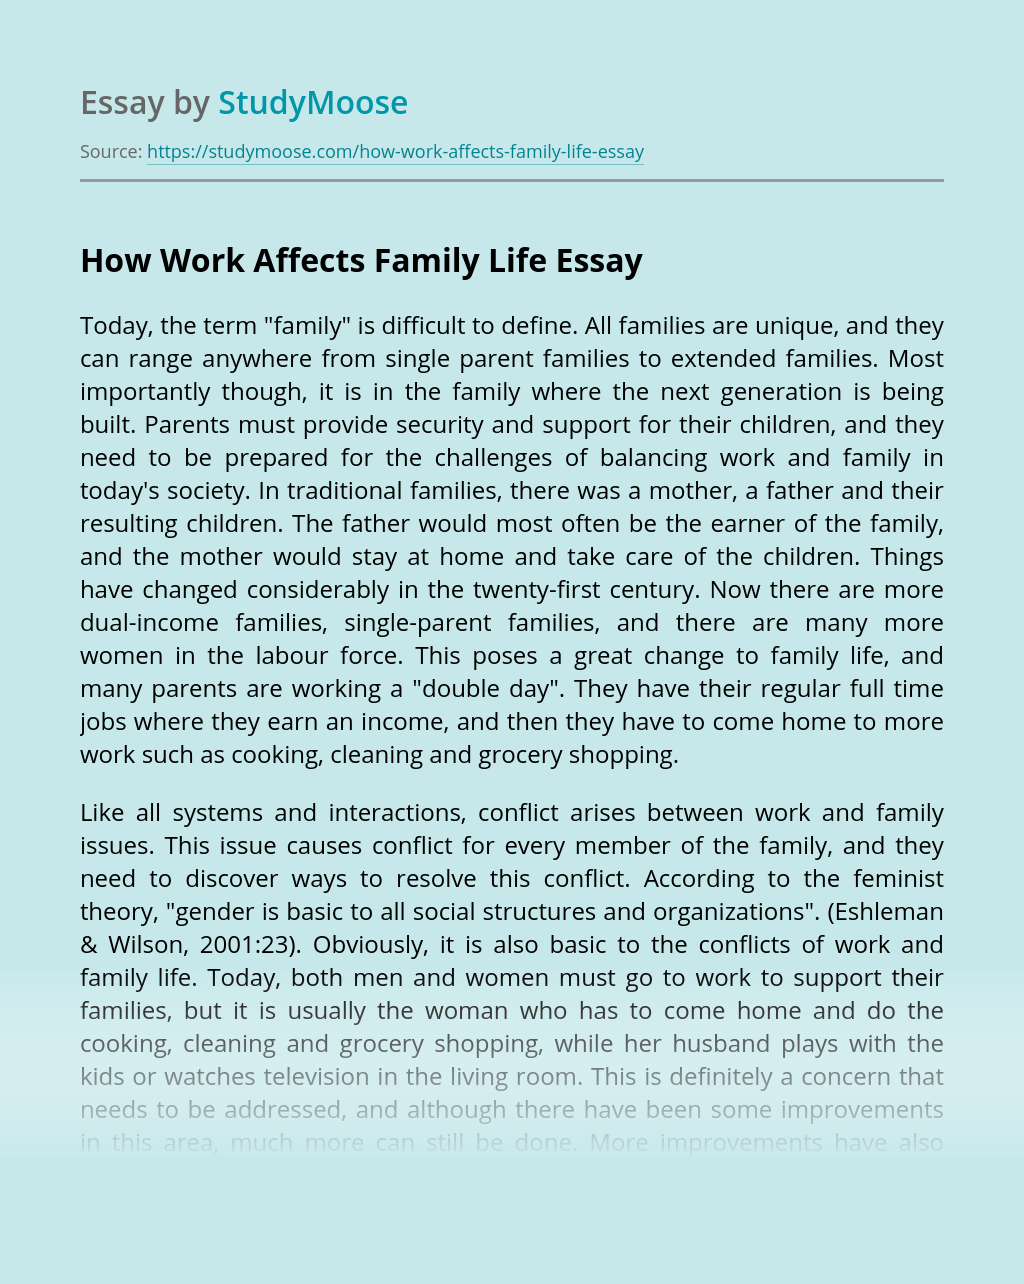 How Work Affects Family Life